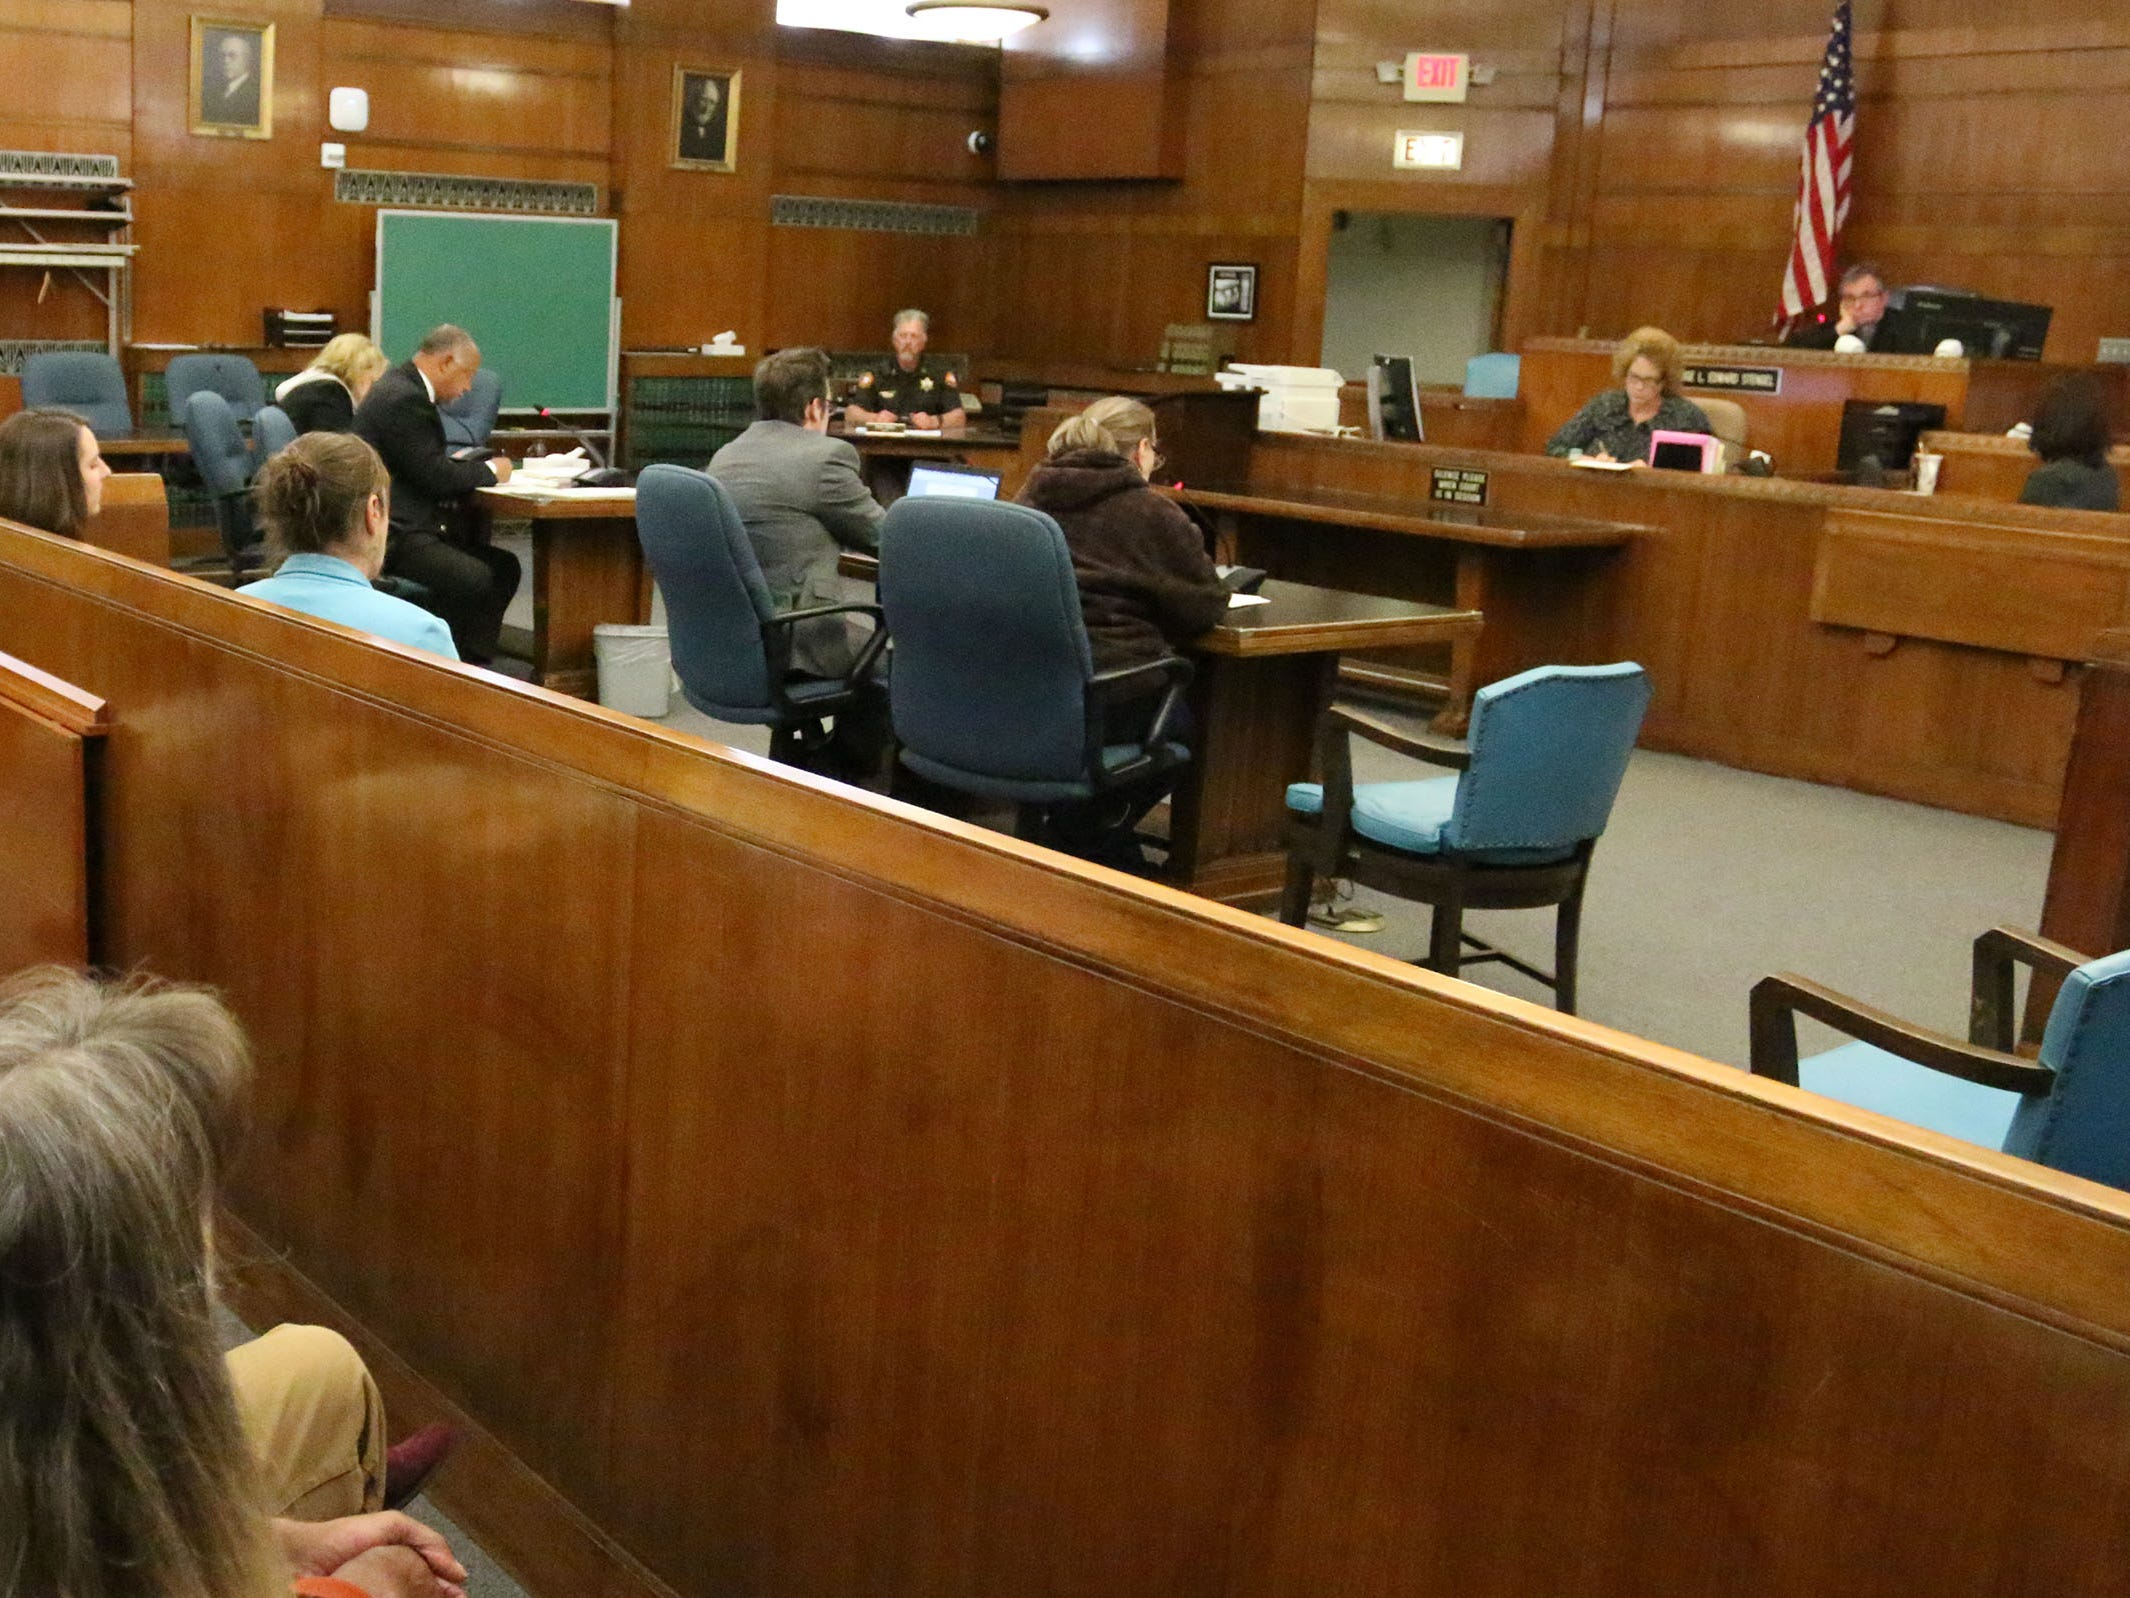 An overall during the sentencing hearing of Christy Rose Tuchel in Sheboygan County Circuit Court Branch 1, Friday, October 5, 2018, in Sheboygan, Wis.